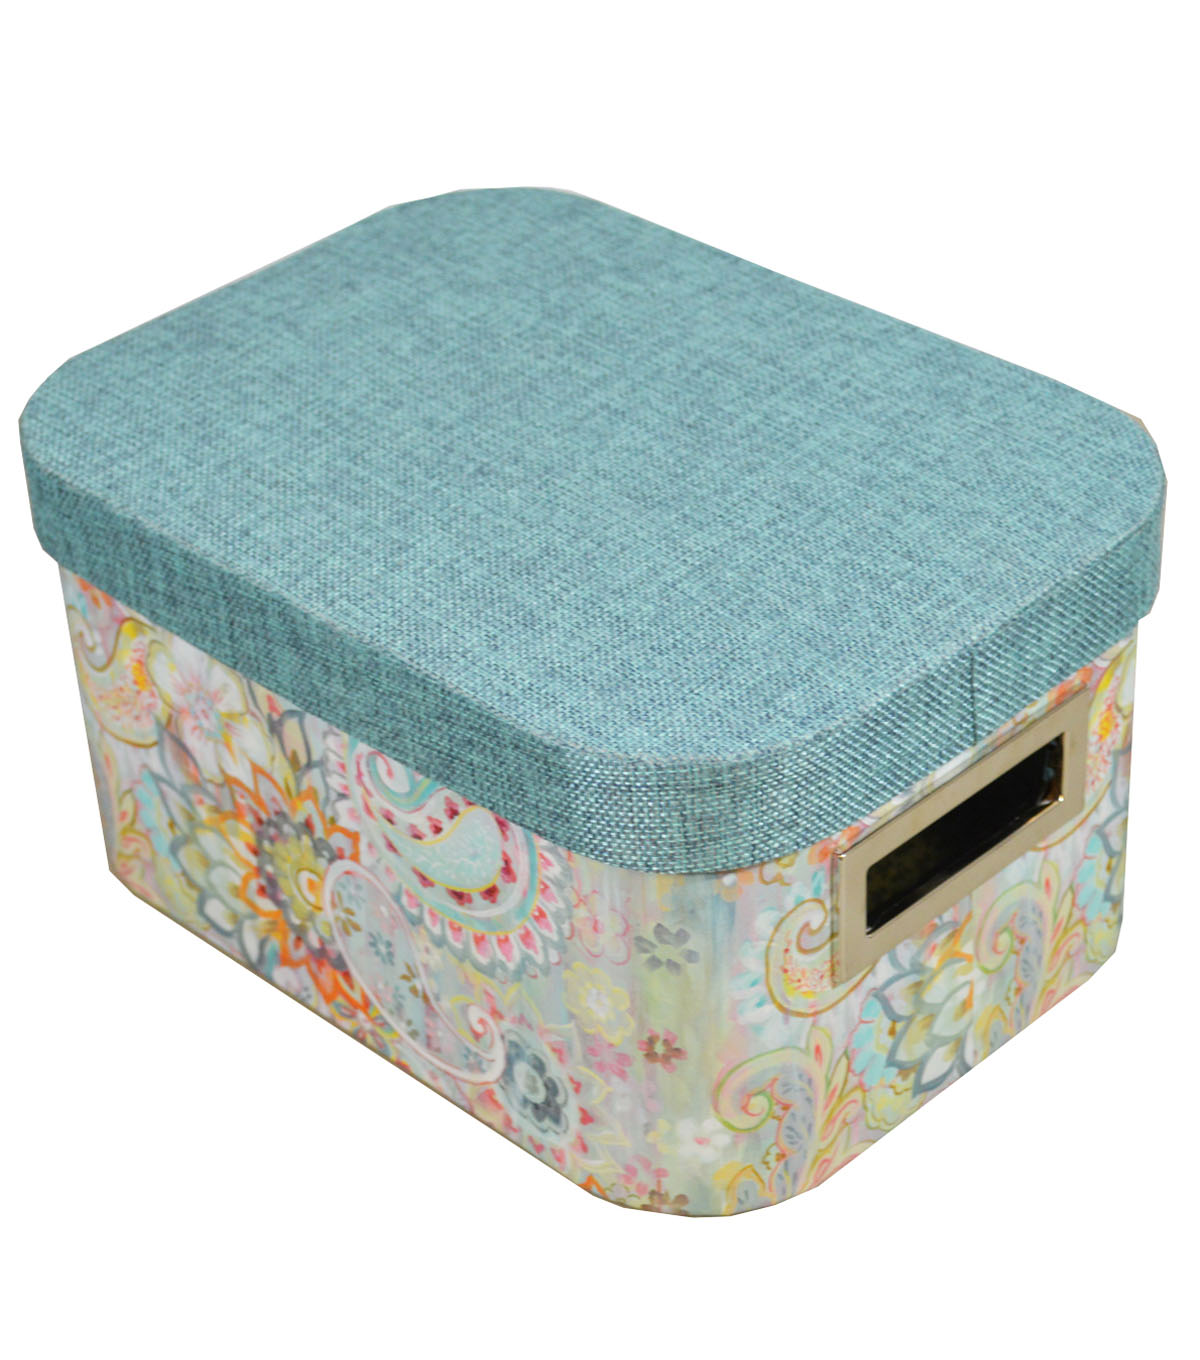 Organizing Essentials Small Oval Storage Box-Boho Japonais